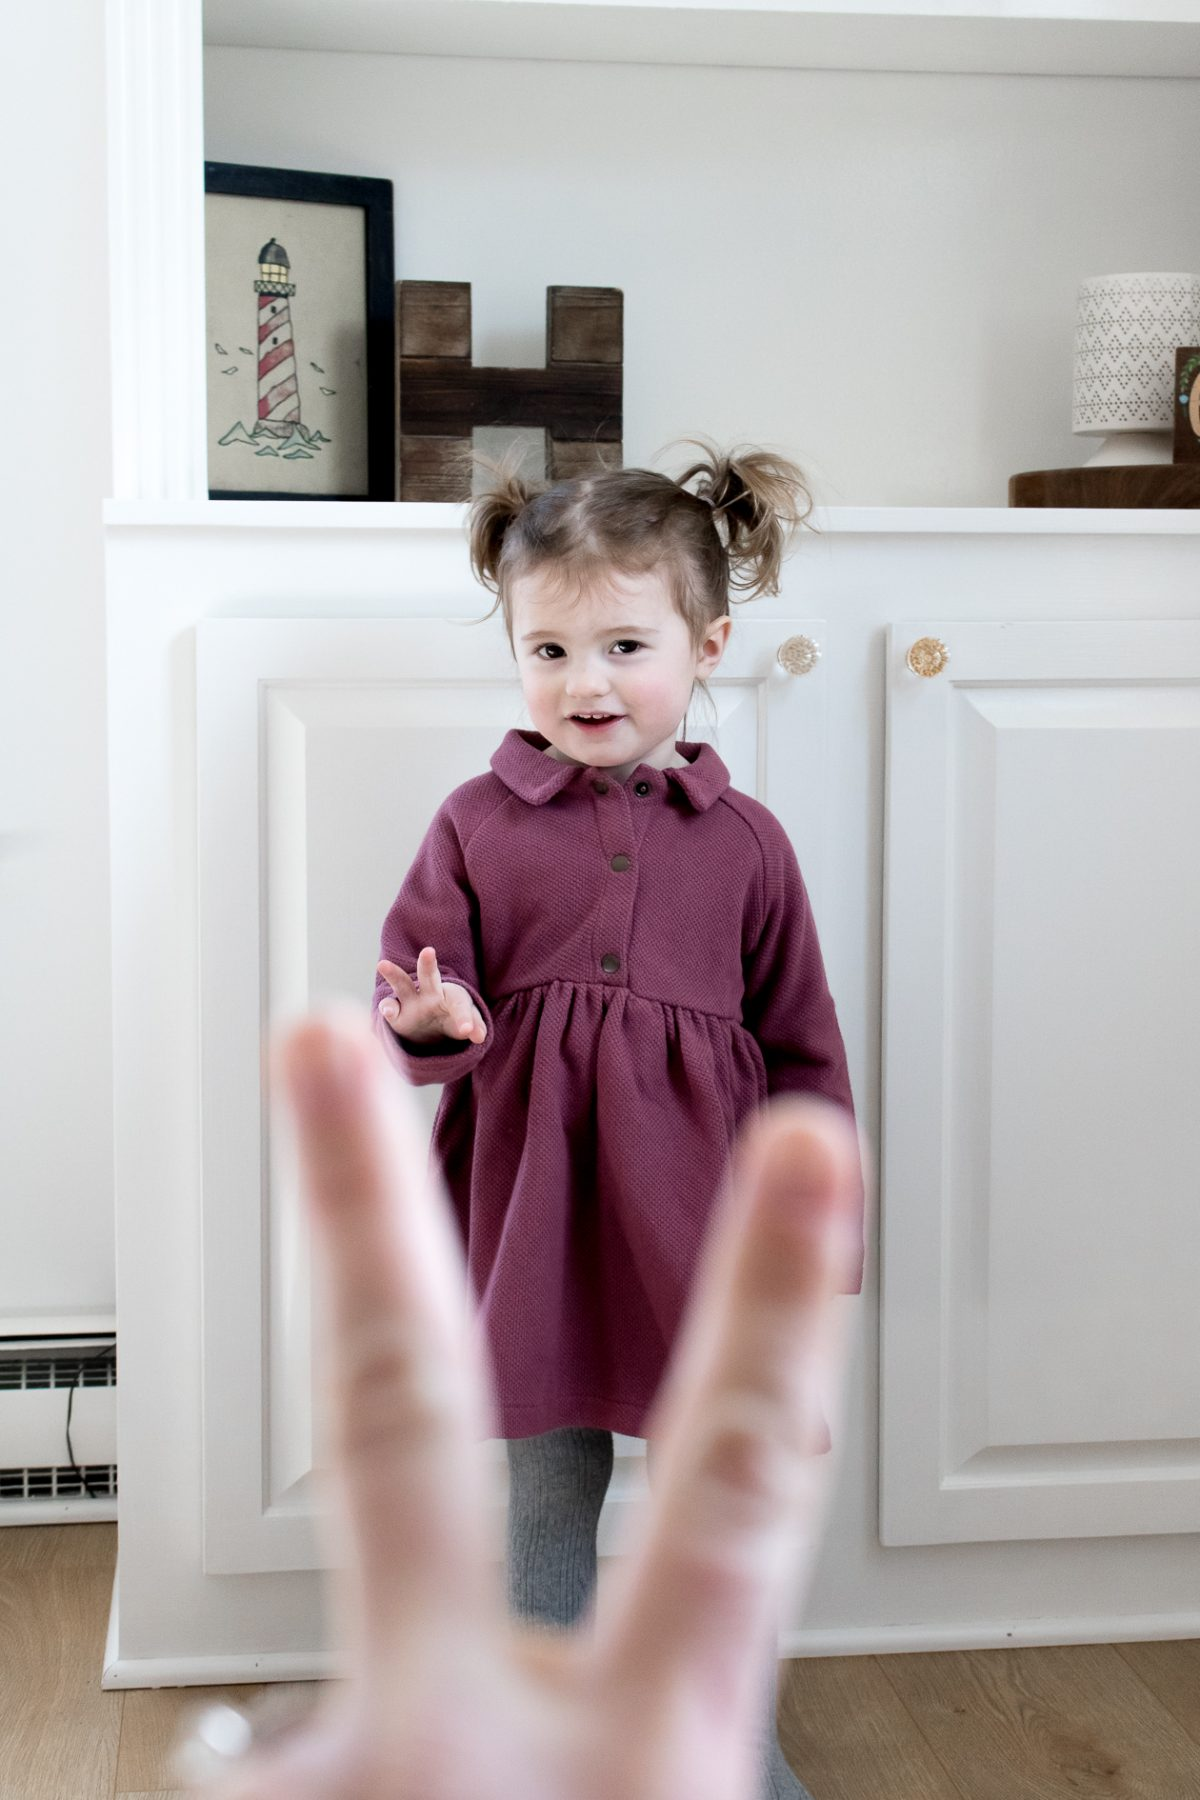 Little Girl with Pigtails in Purple Dress Trying to Hold up two fingers